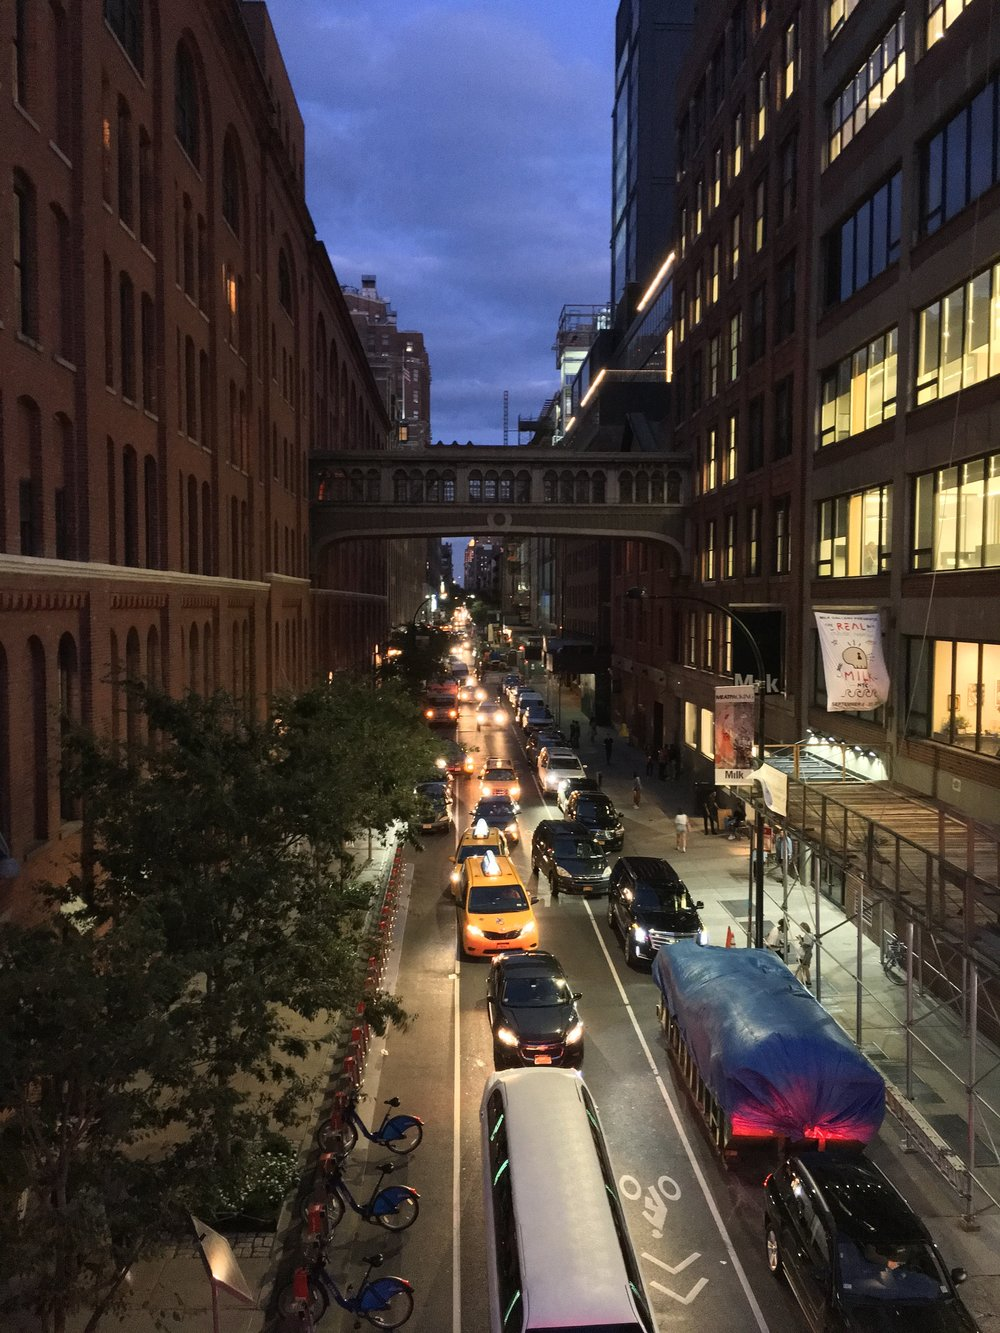 Nighttime on the Highline. Photography: Allison Jane (@Thestoryofajane)